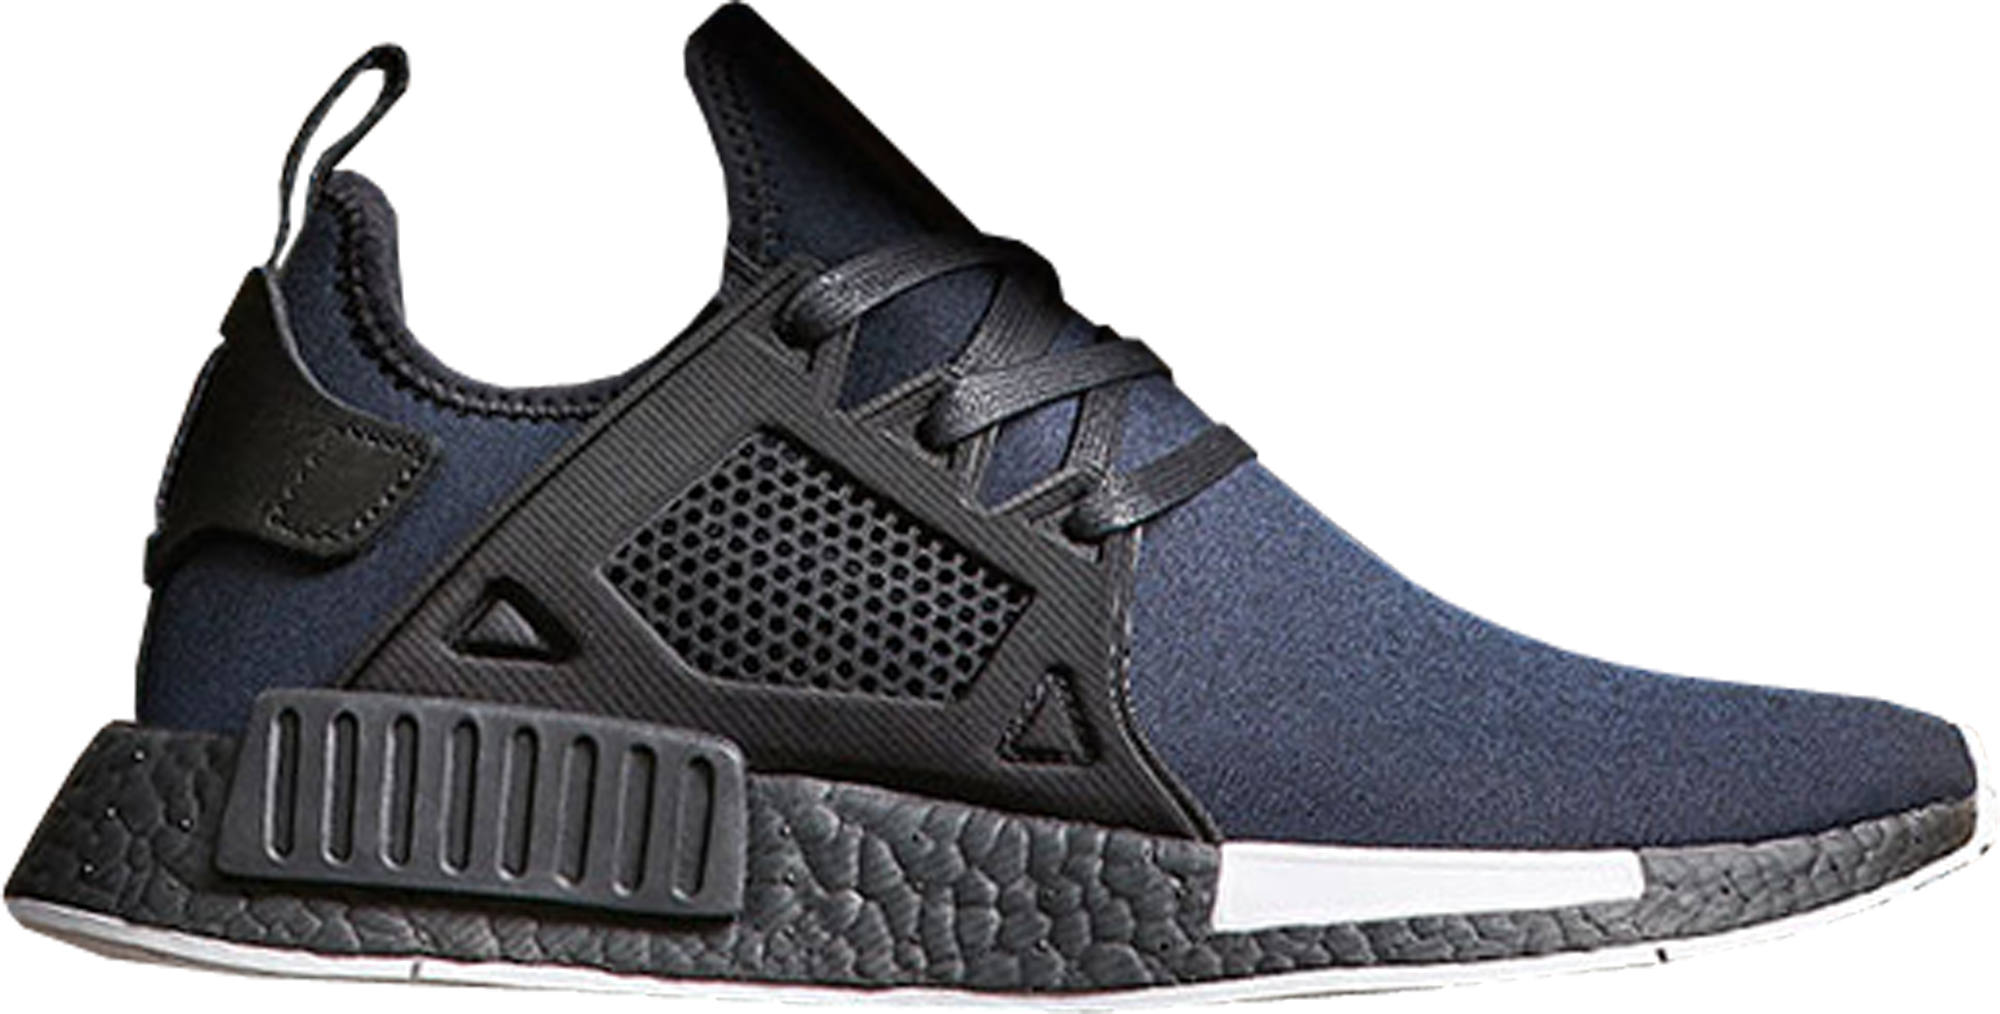 adidas NMD XR1 Size? Henry Poole